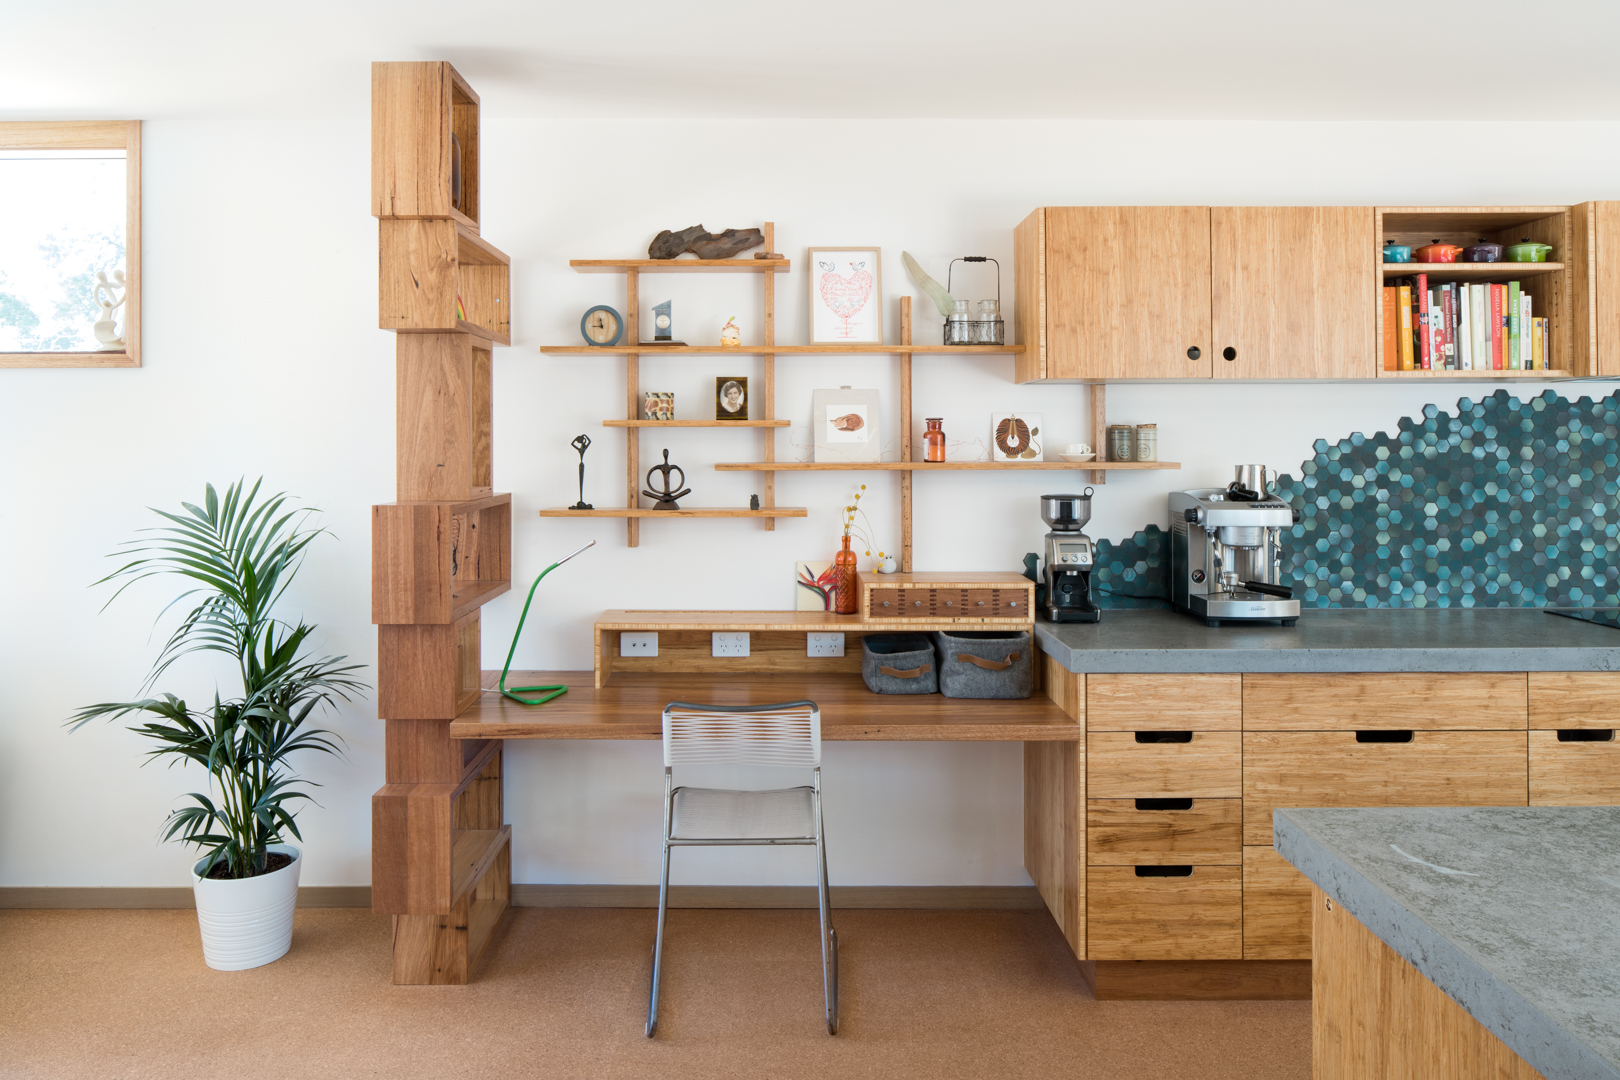 Joinery By Select Custom Joinery: Custom Kitchen with Sustainable materials and finishes including; Reclaimed Hardwood Shelving, plywood and bamboo cabinets with Natural Oil finishes.  Photography by Charlie Kinross